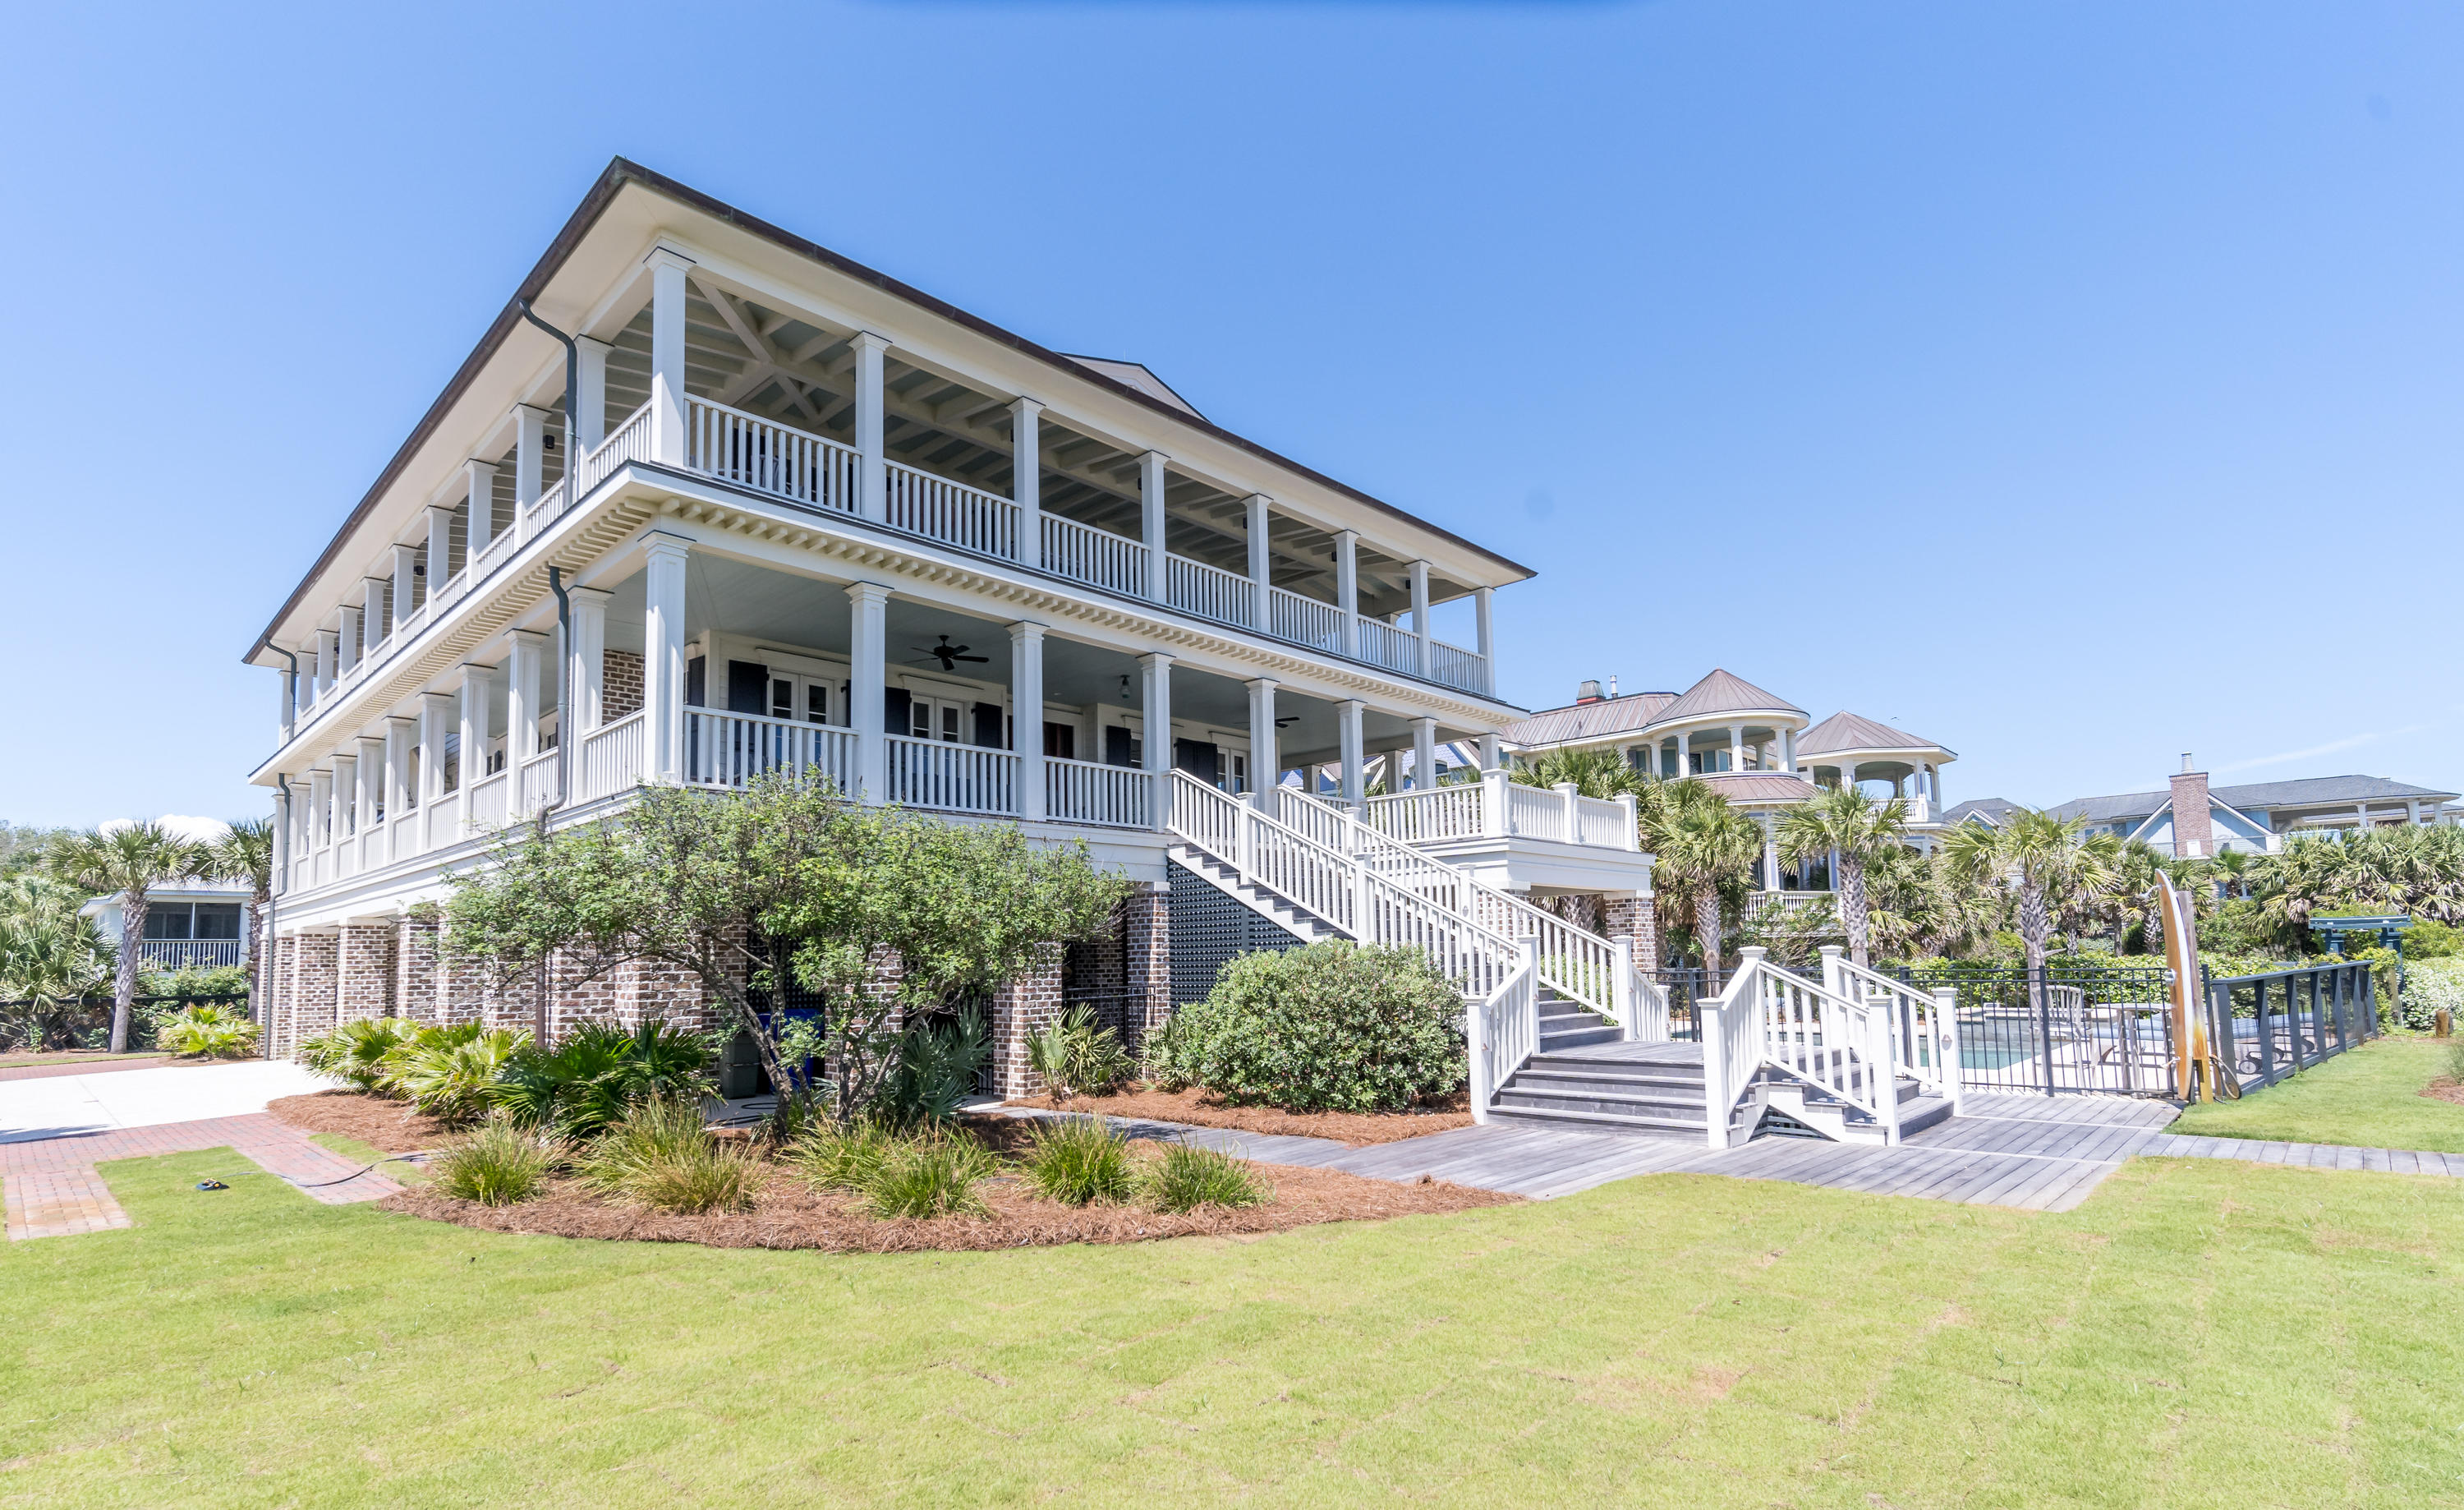 Isle of Palms Homes For Sale - 2 45th, Isle of Palms, SC - 77